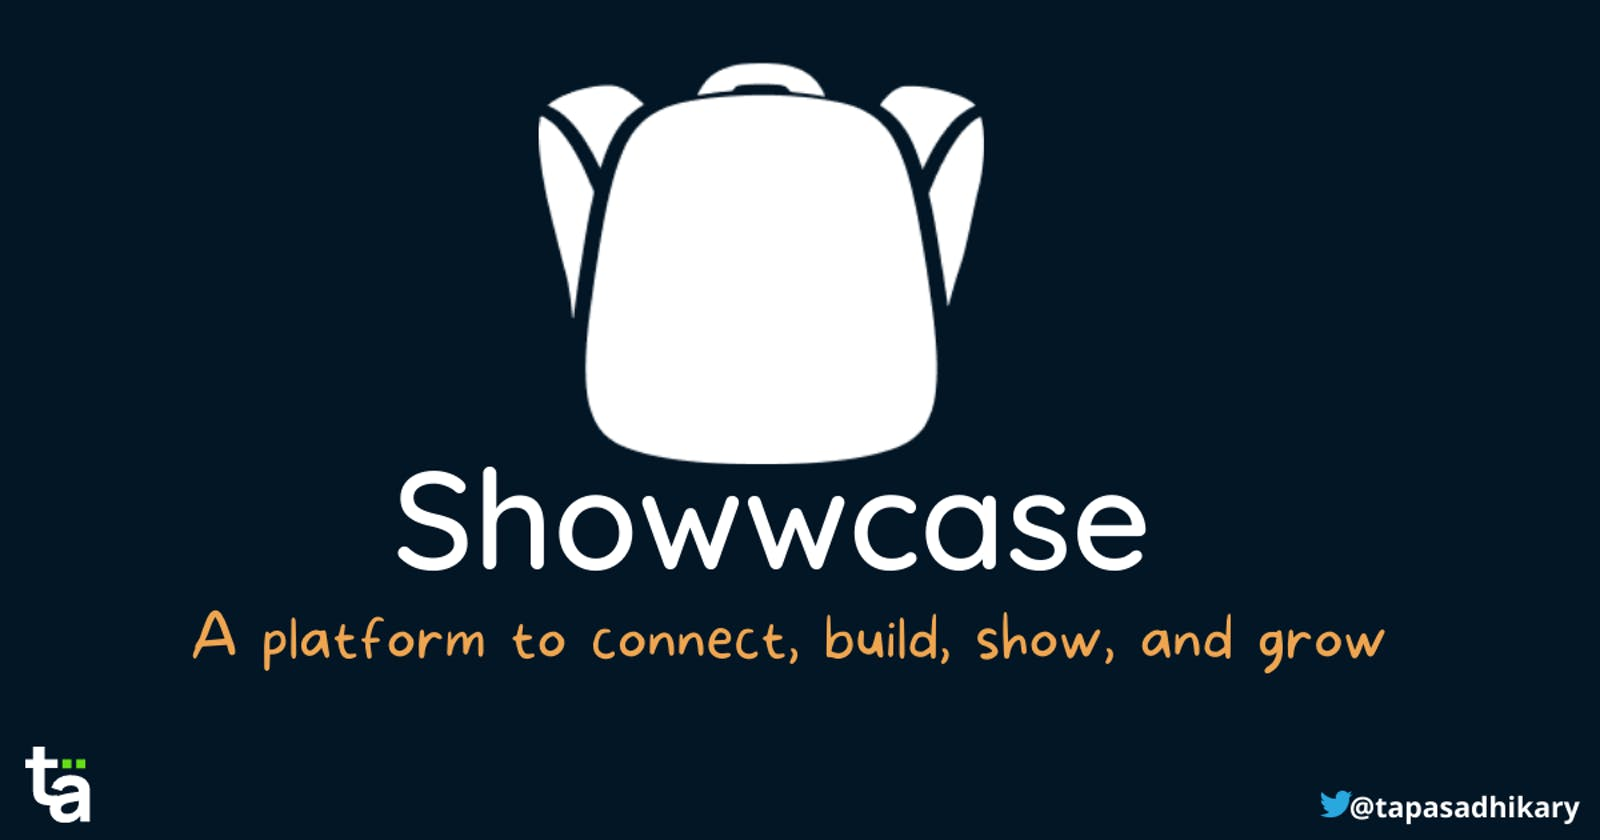 Let's Showwcase - A platform to connect, build, show, and grow